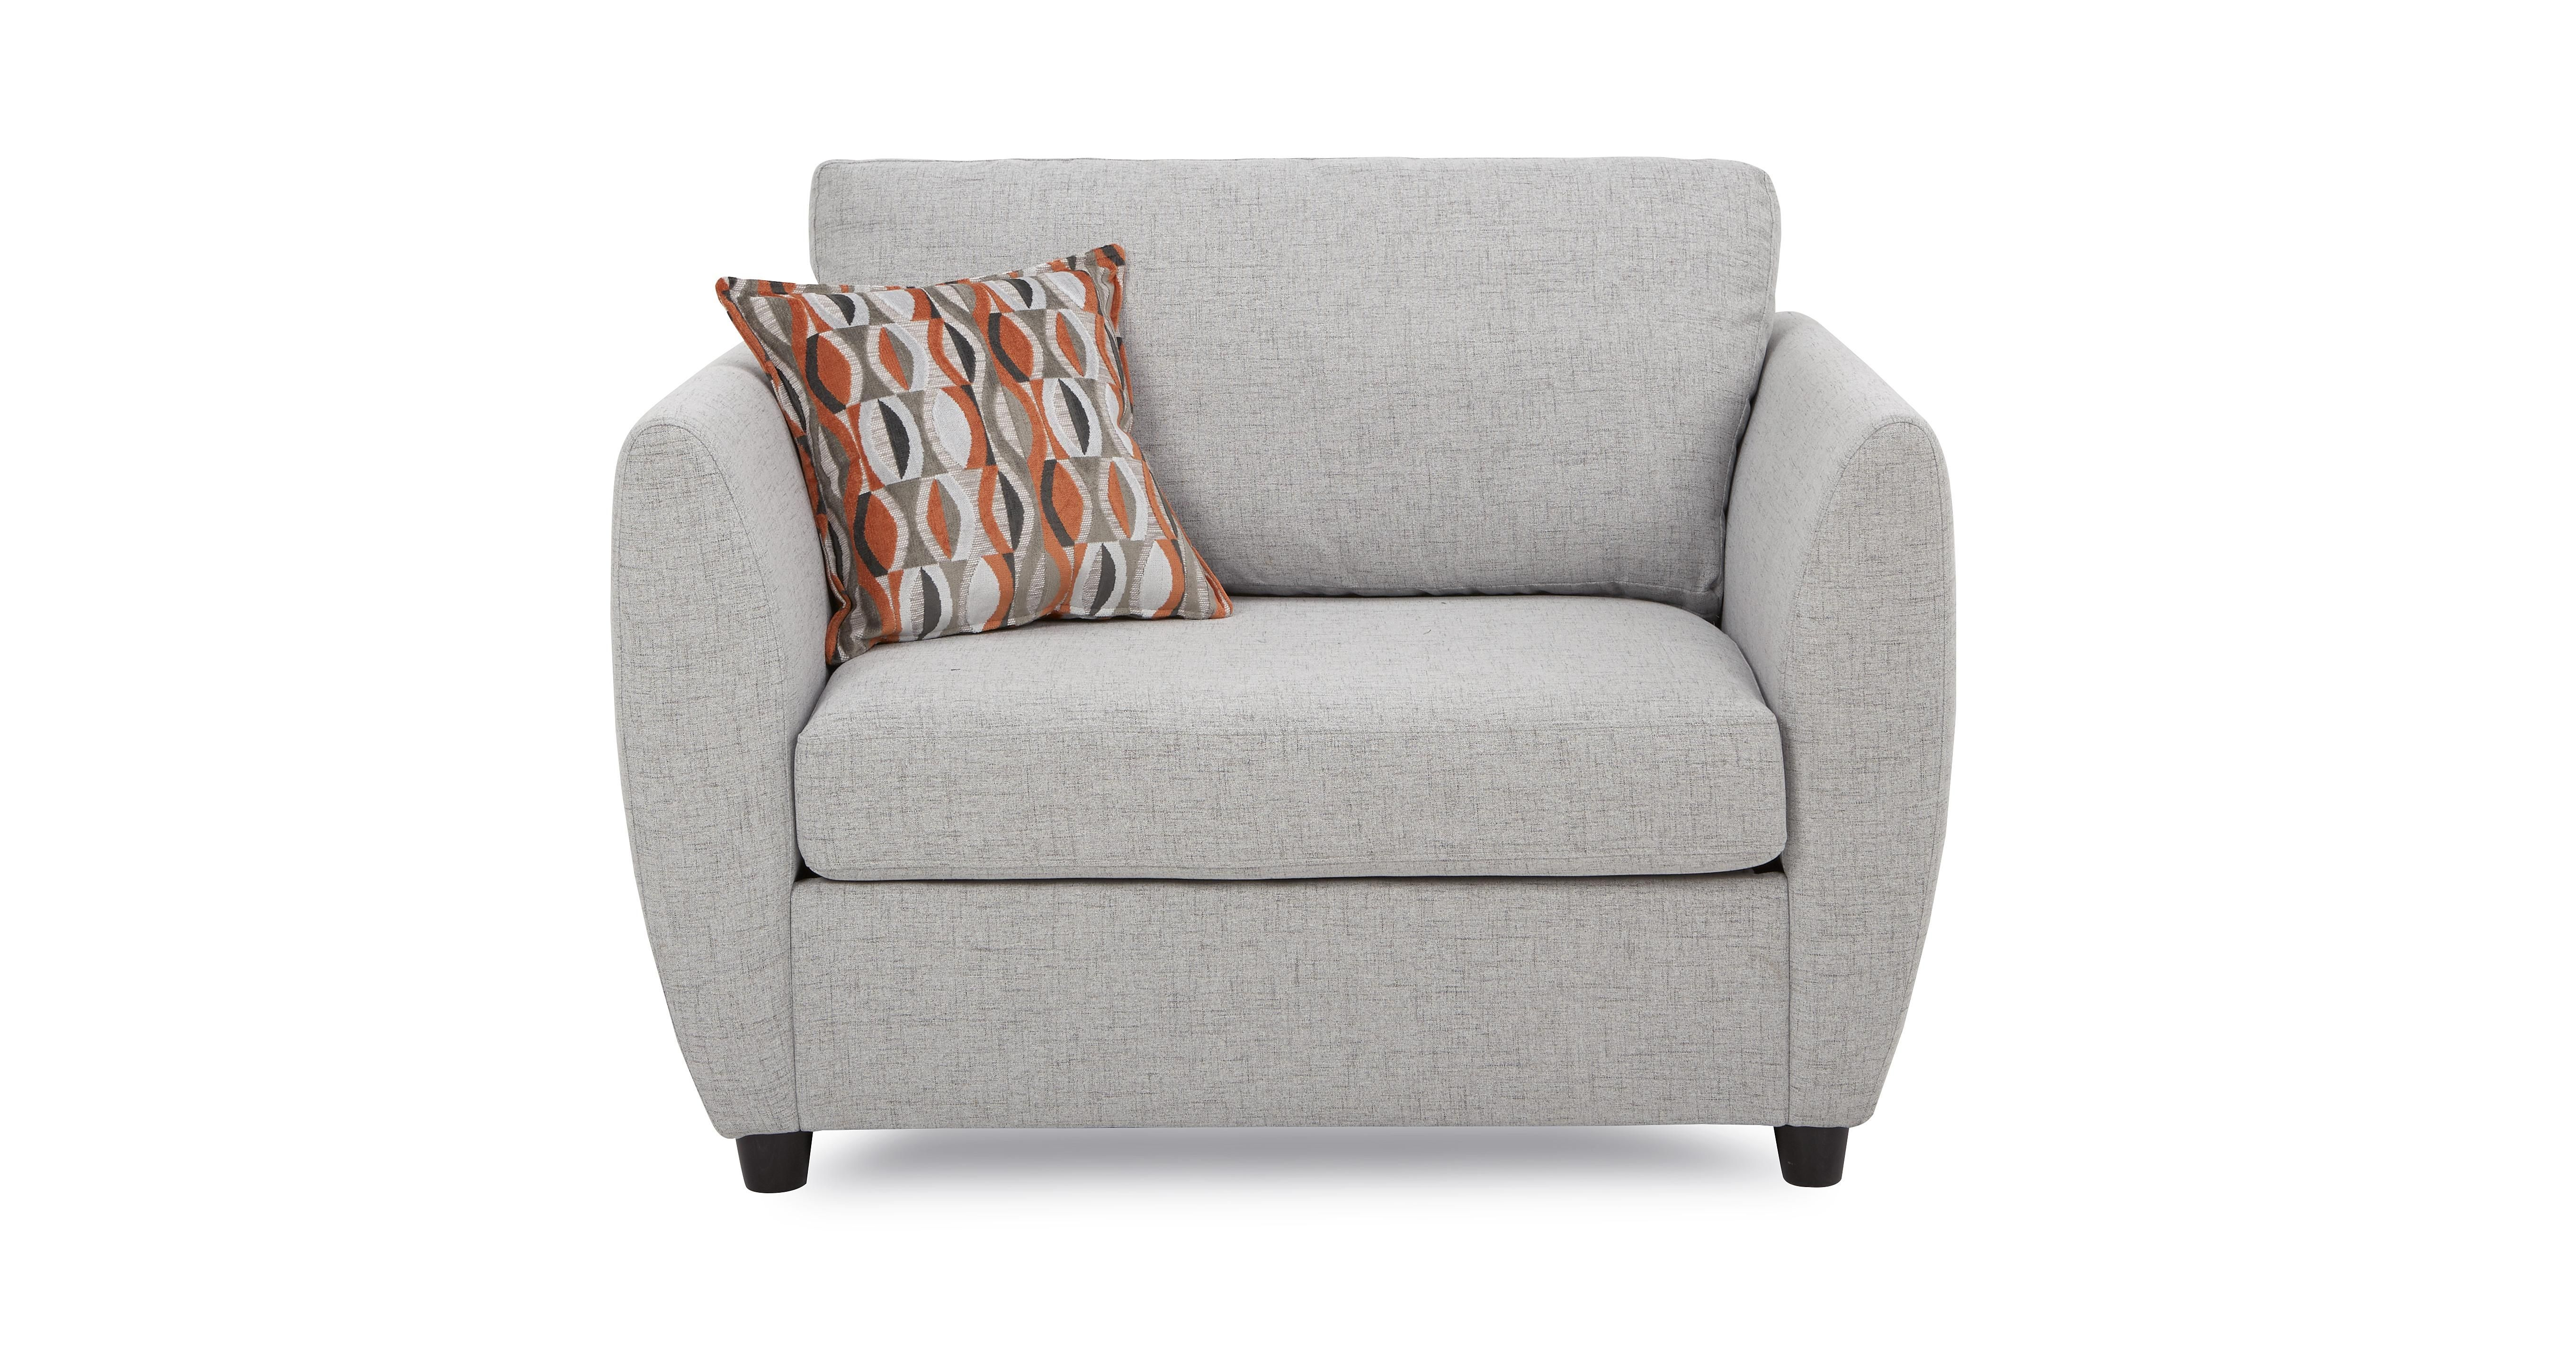 Best Single Sofa Bed Chair Single Sofa Bed Chair Single Sofa